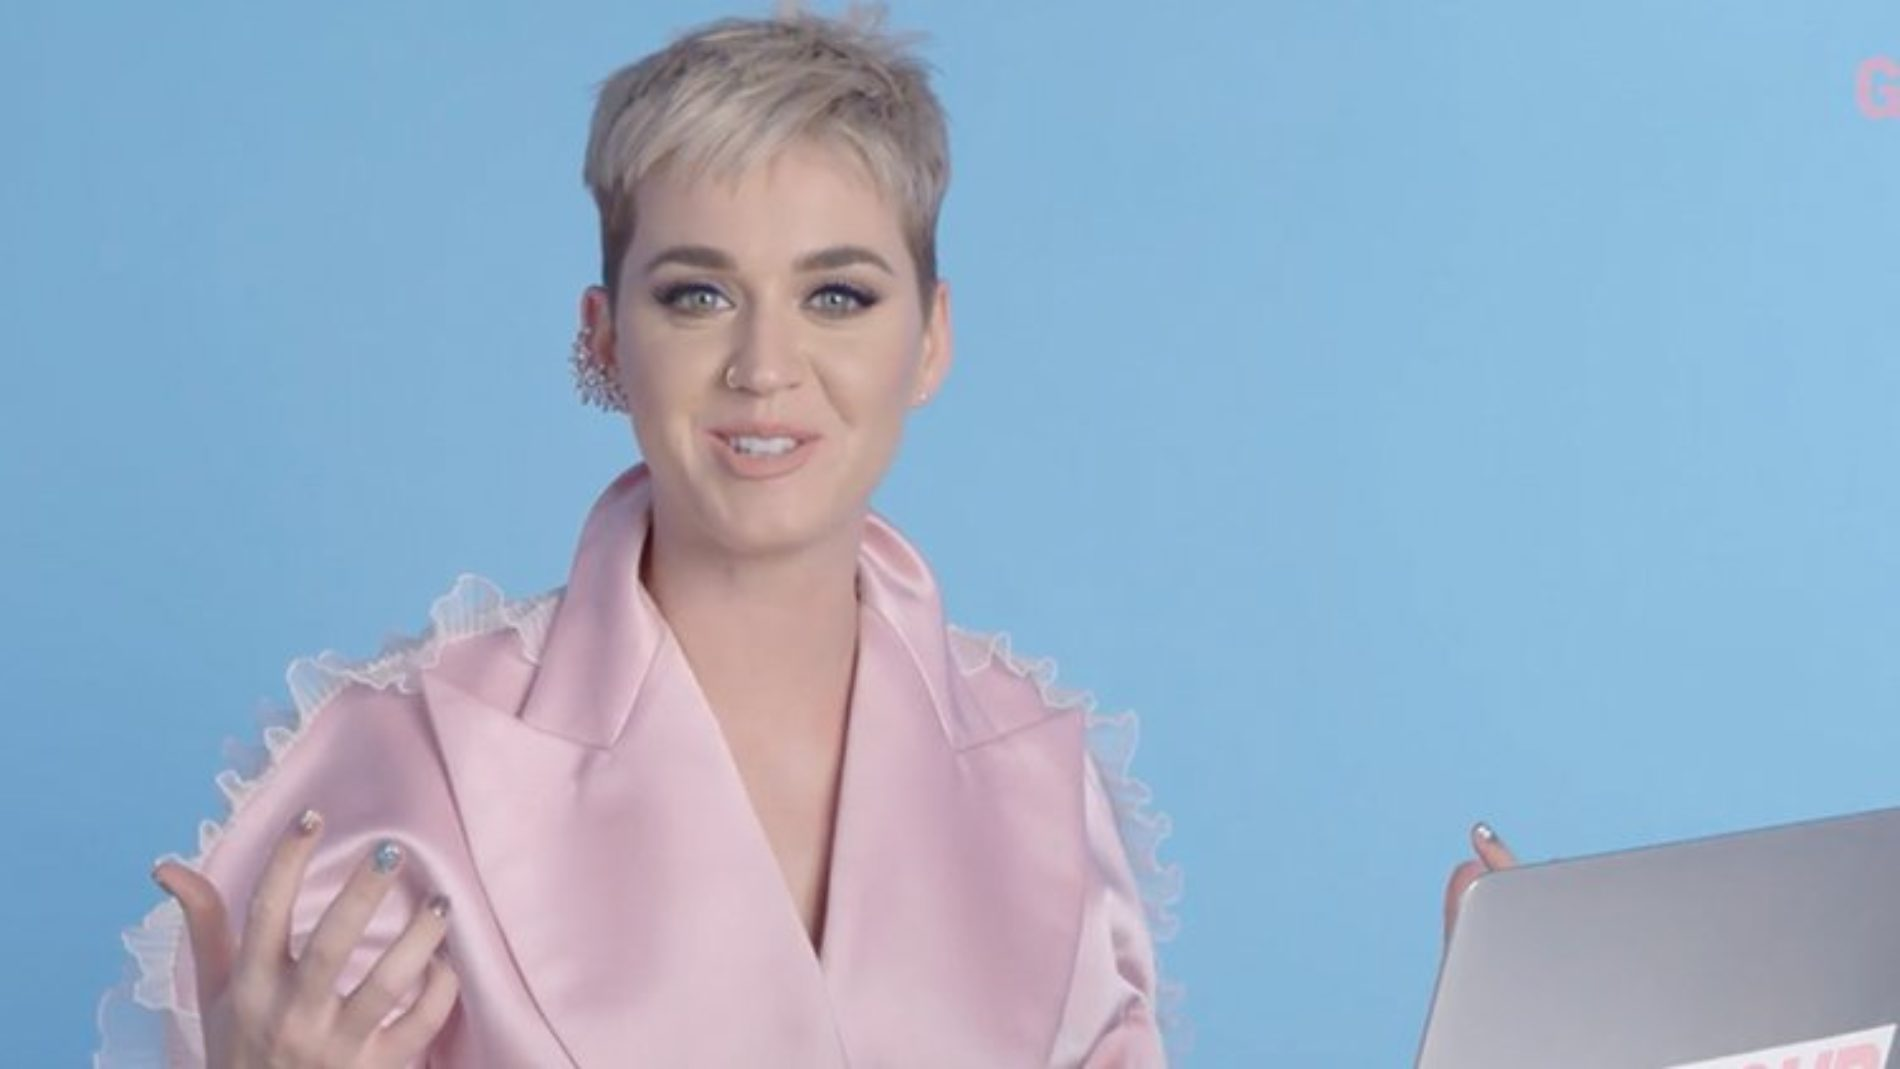 Katy Perry Reveals some Second Thoughts about her breakout hit song 'I Kissed a Girl'